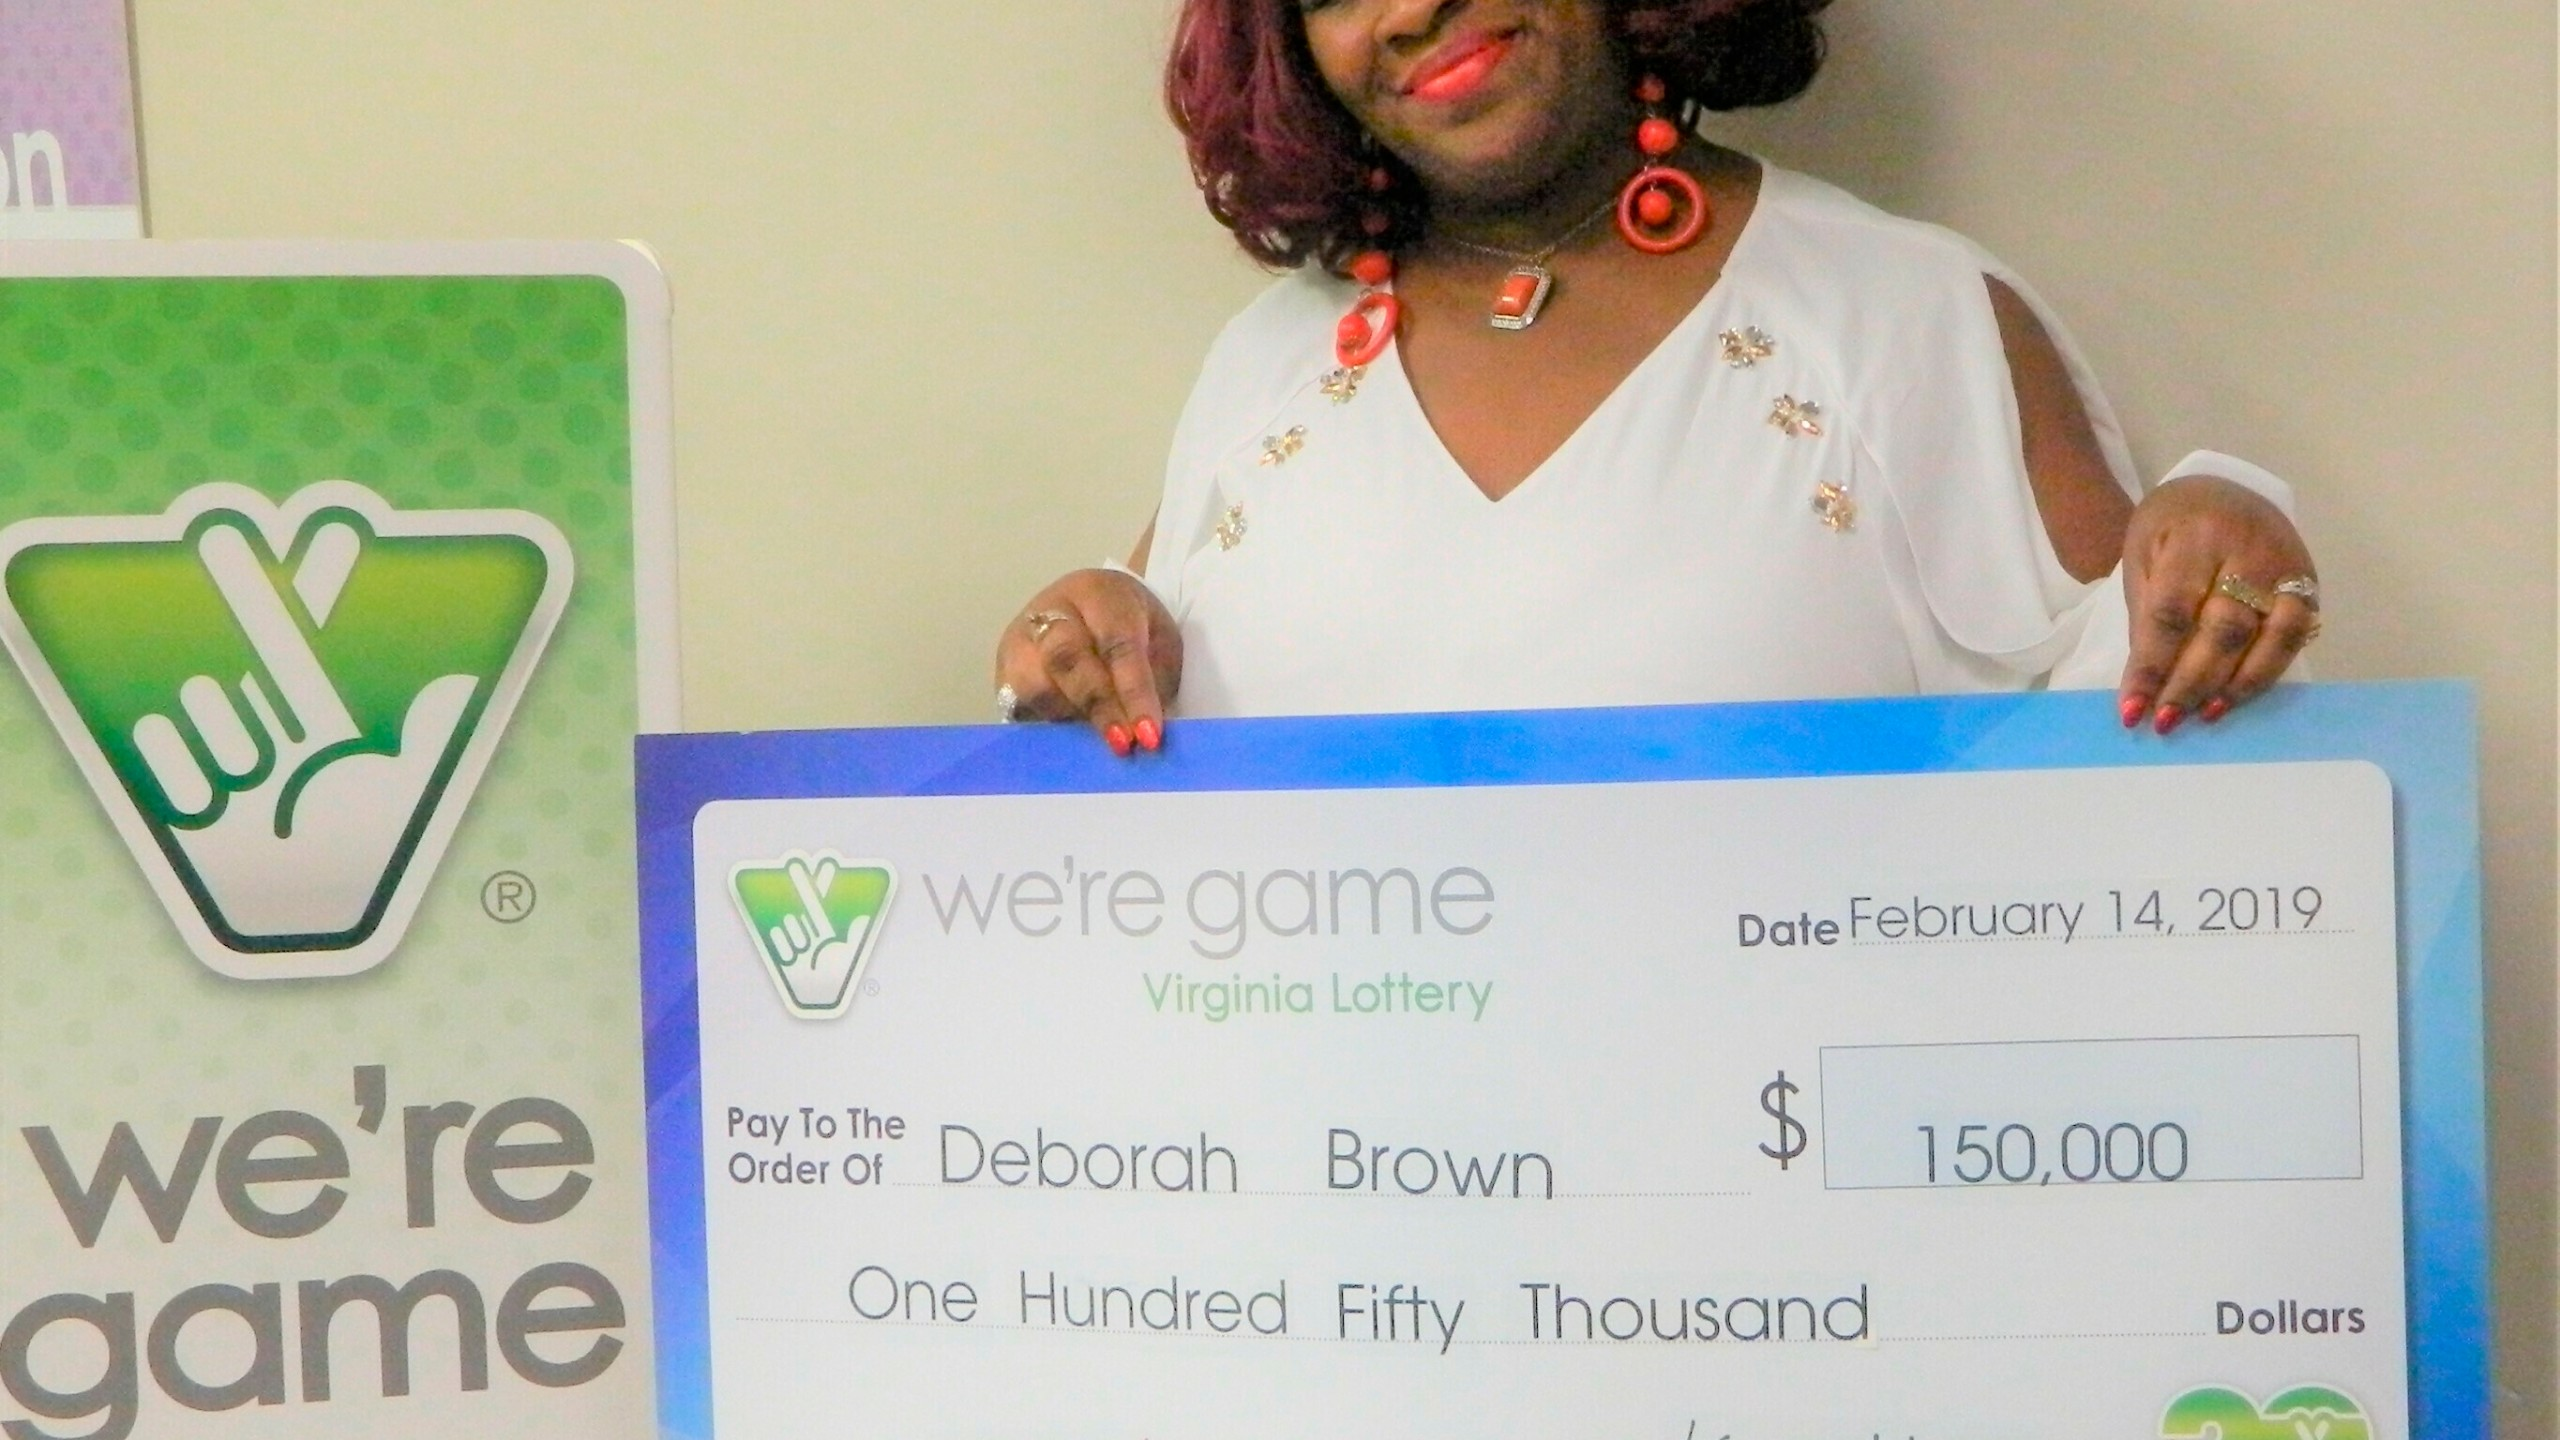 Lottery_Winner_Lucky_Numbers_95766-159532.jpg02463868